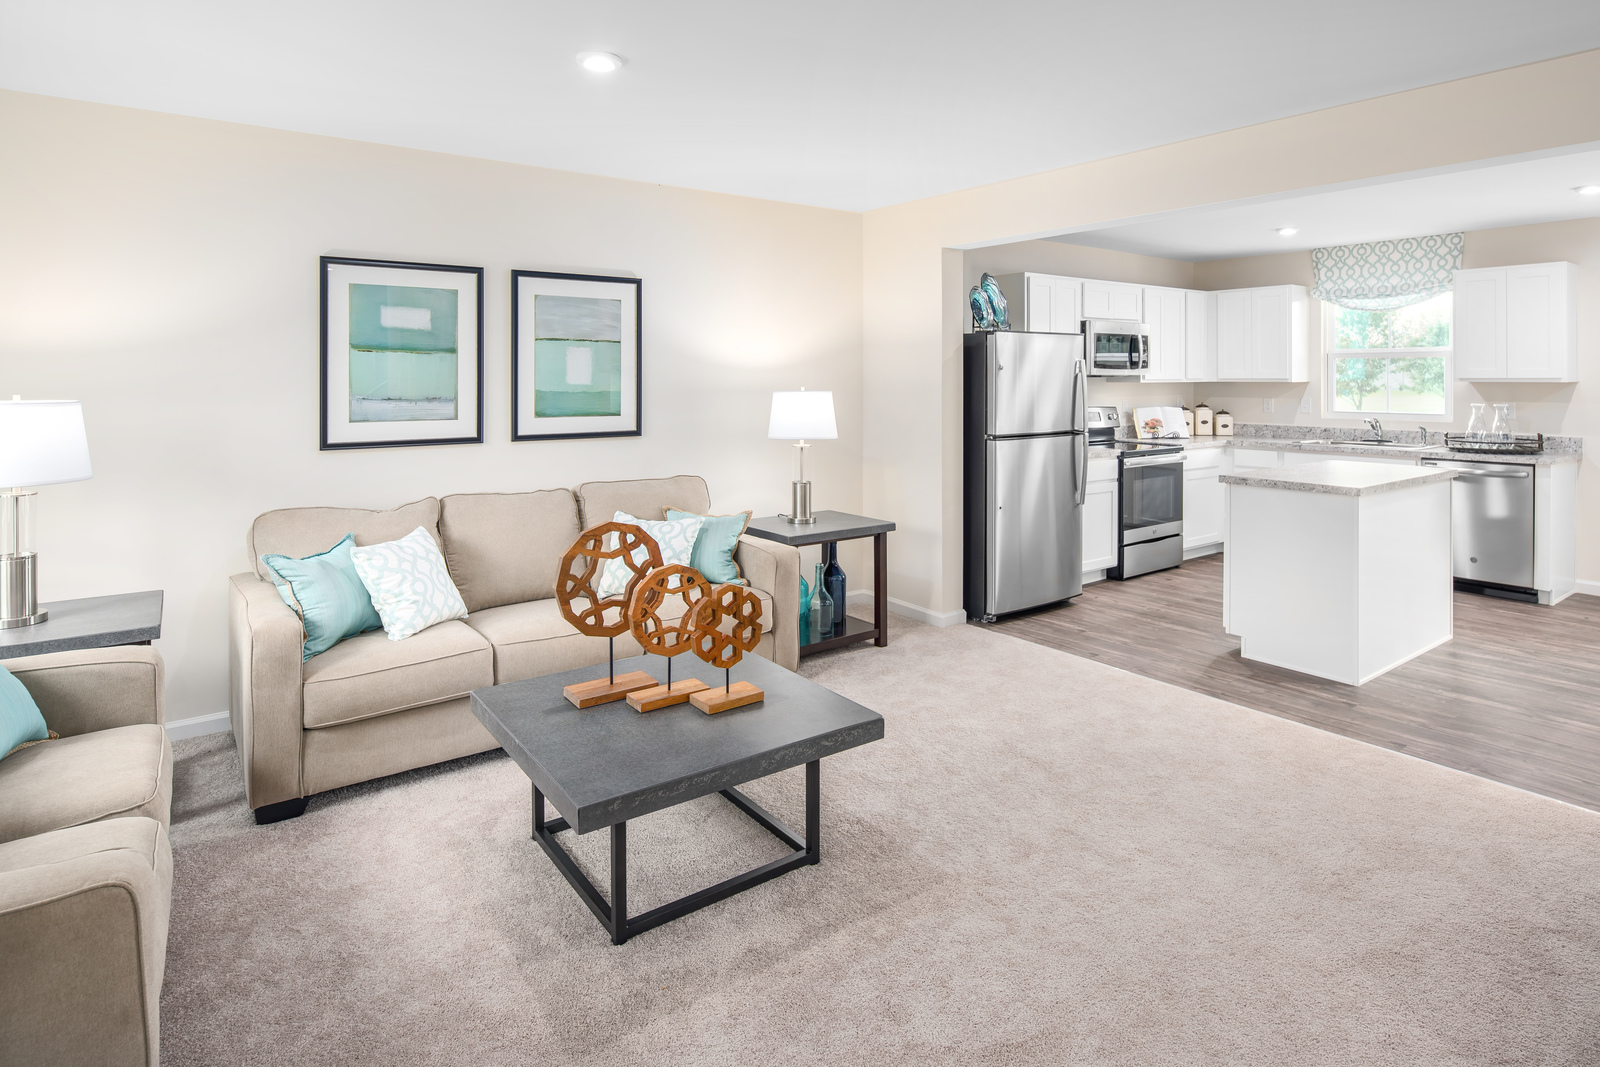 Plan 1220 at Ridgely Forest Townhomes